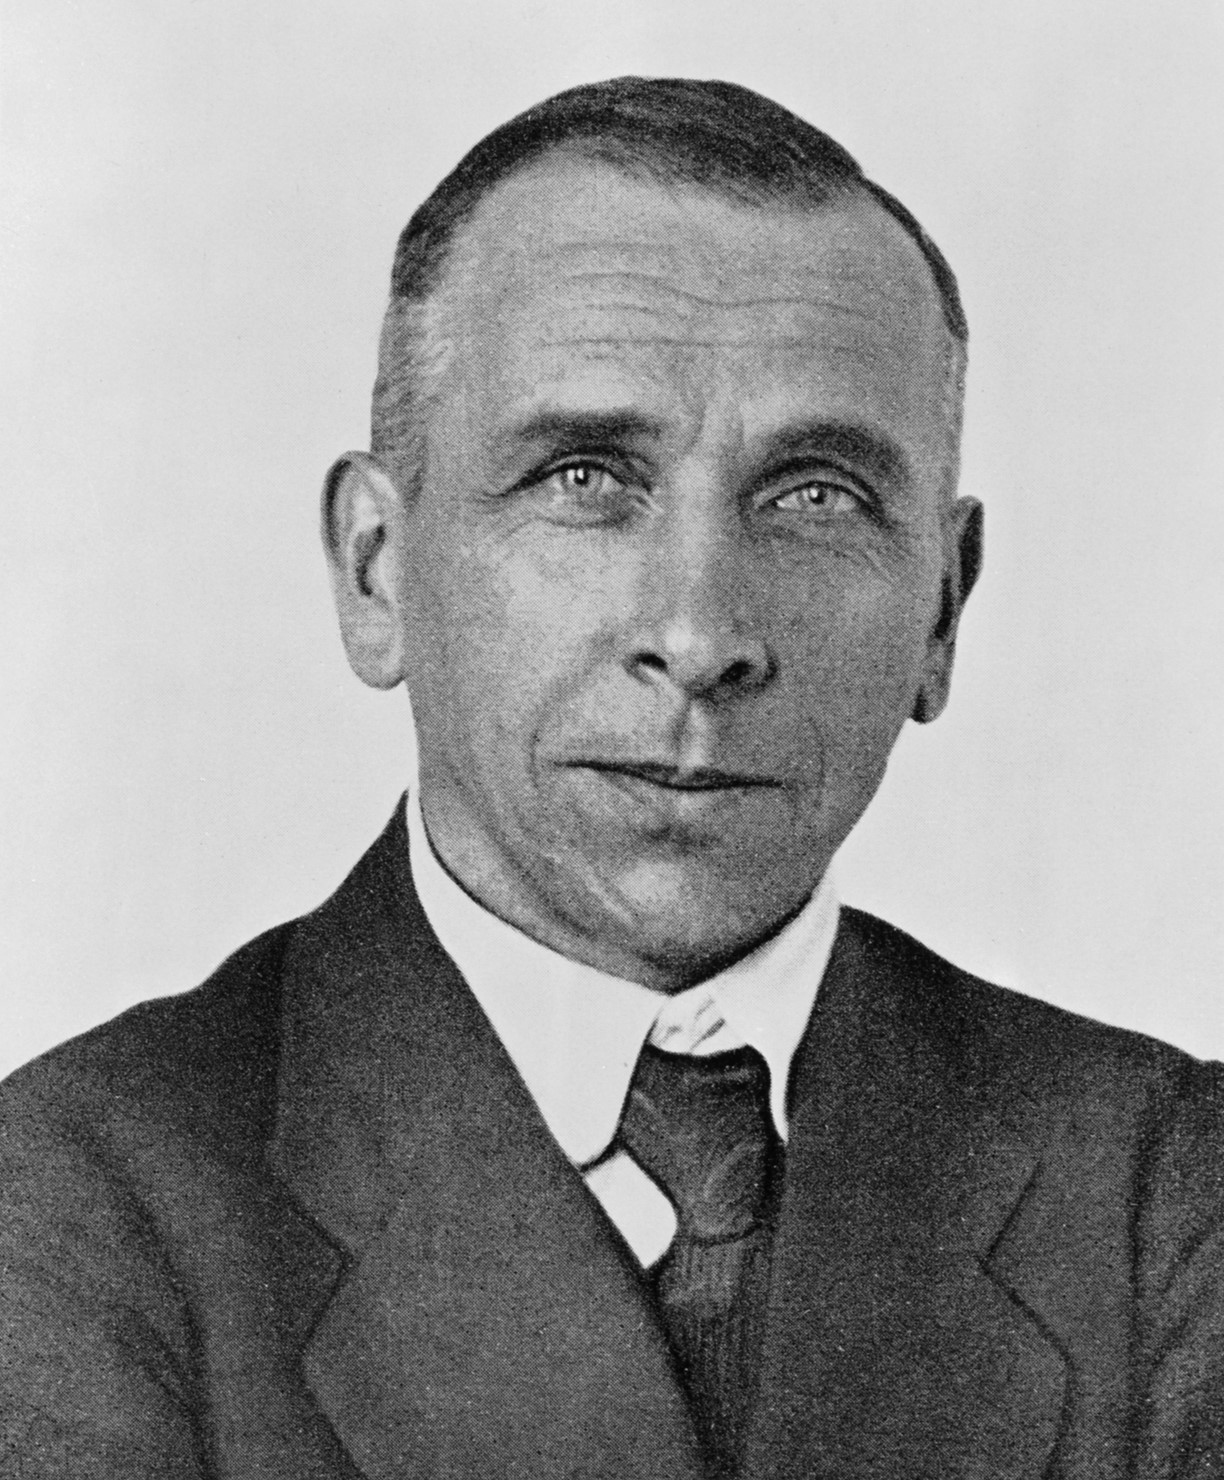 a biography of alfred lothar wegener Wegener, alfred lothar (b  wegener's biography by his daughter,  alfred lothar wegener was a meteorologist and geophysicist best known for his theory of.